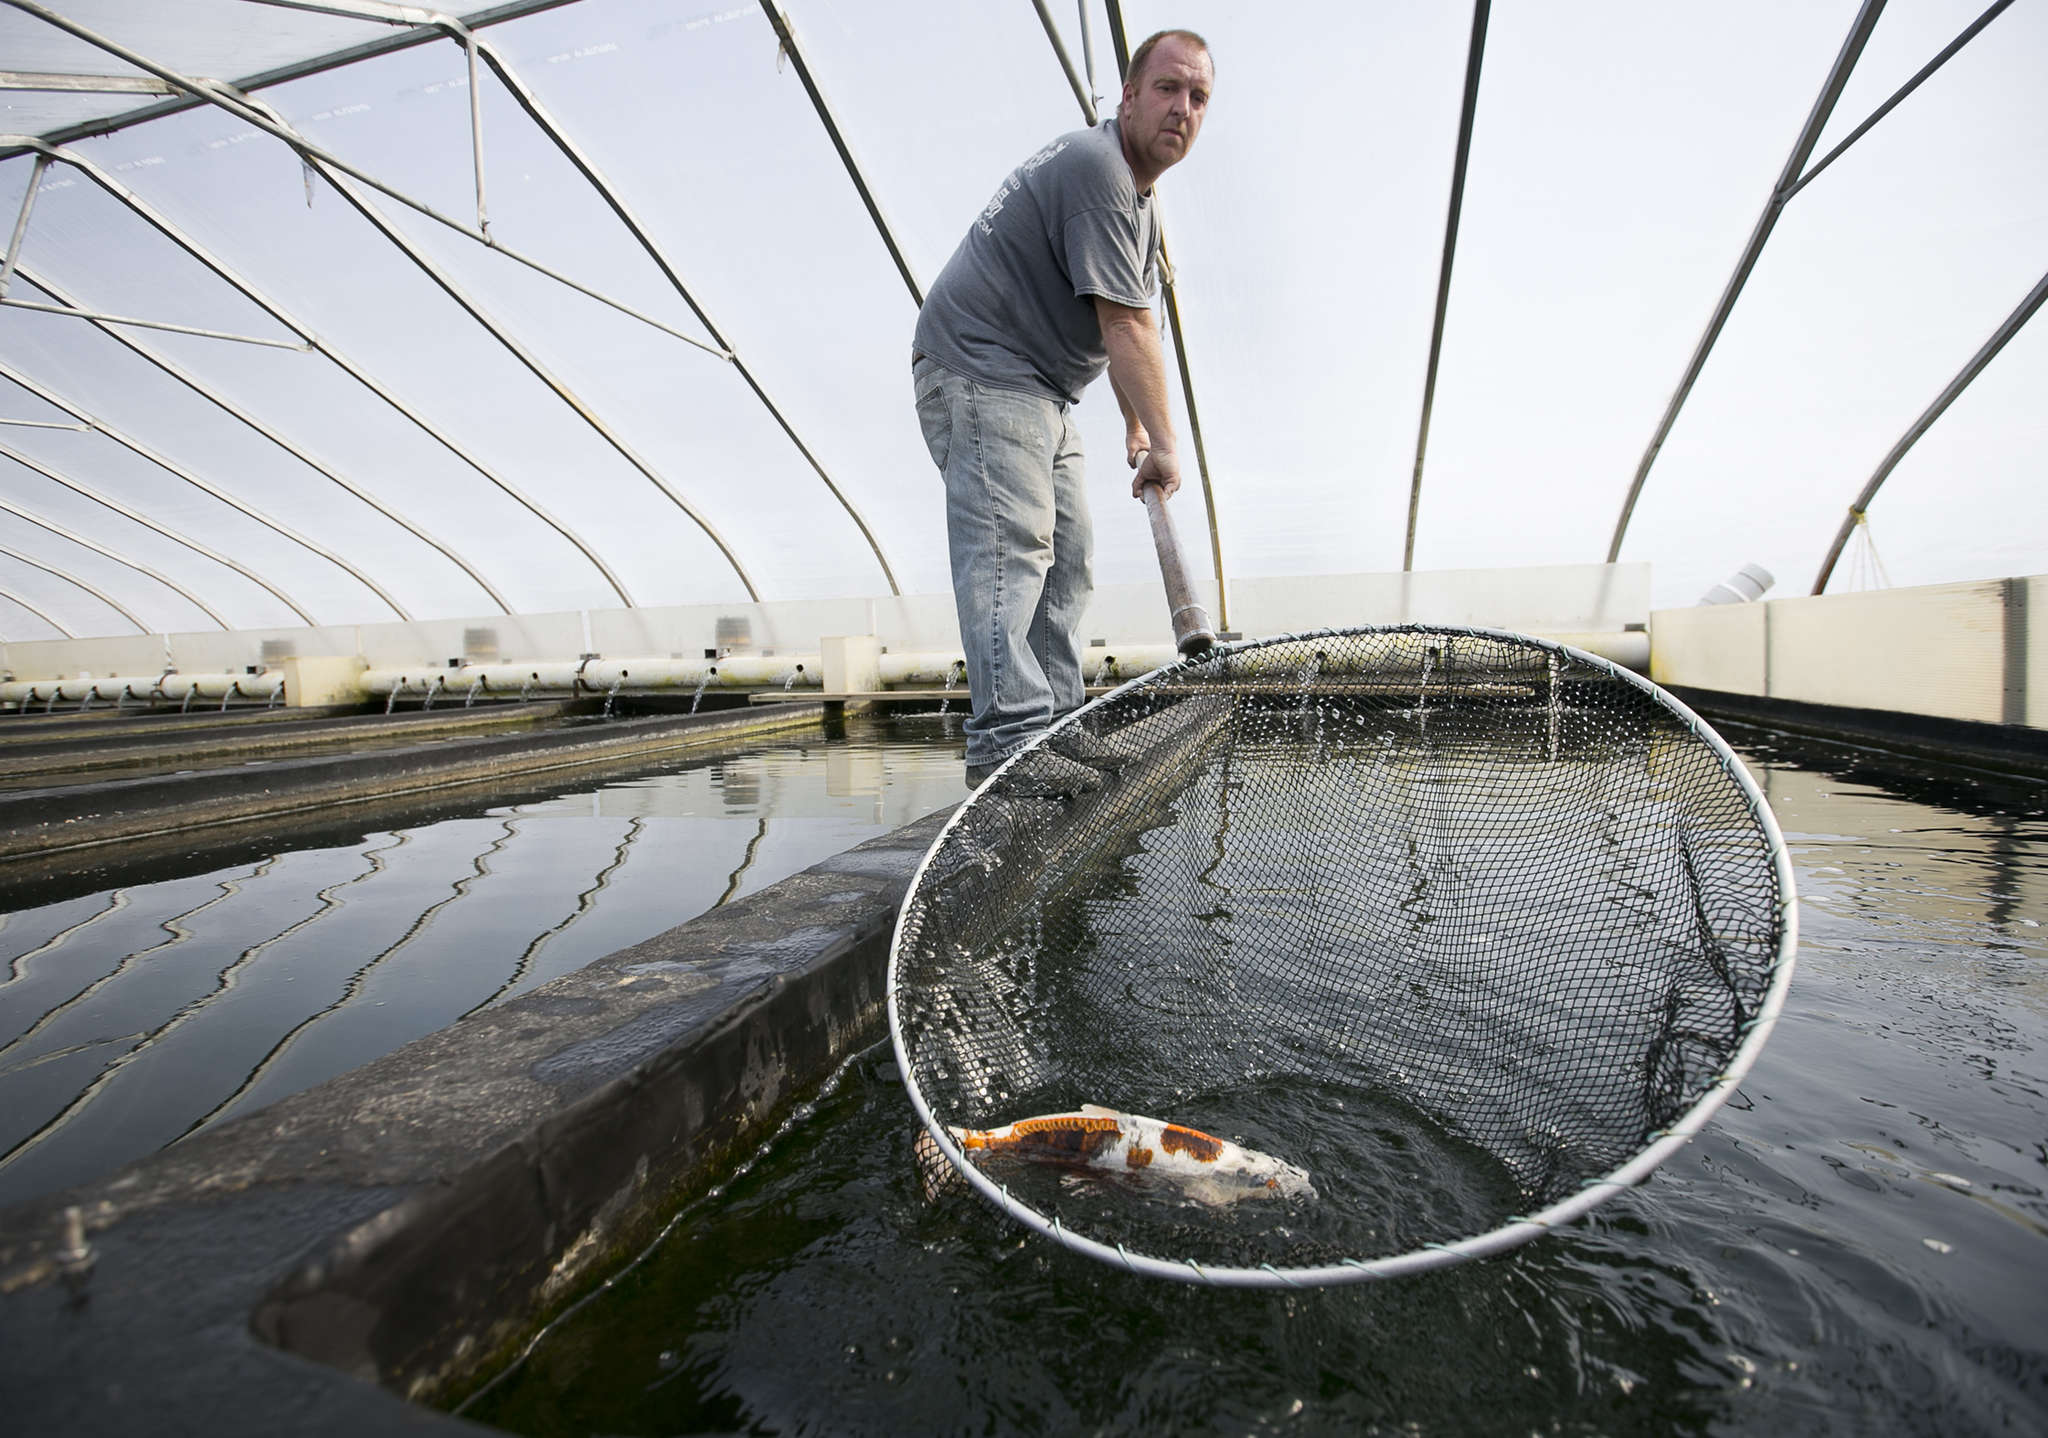 Matthew McCann removes koi from a tank for photographing at the farm, which produces about 10,000 babies a year.